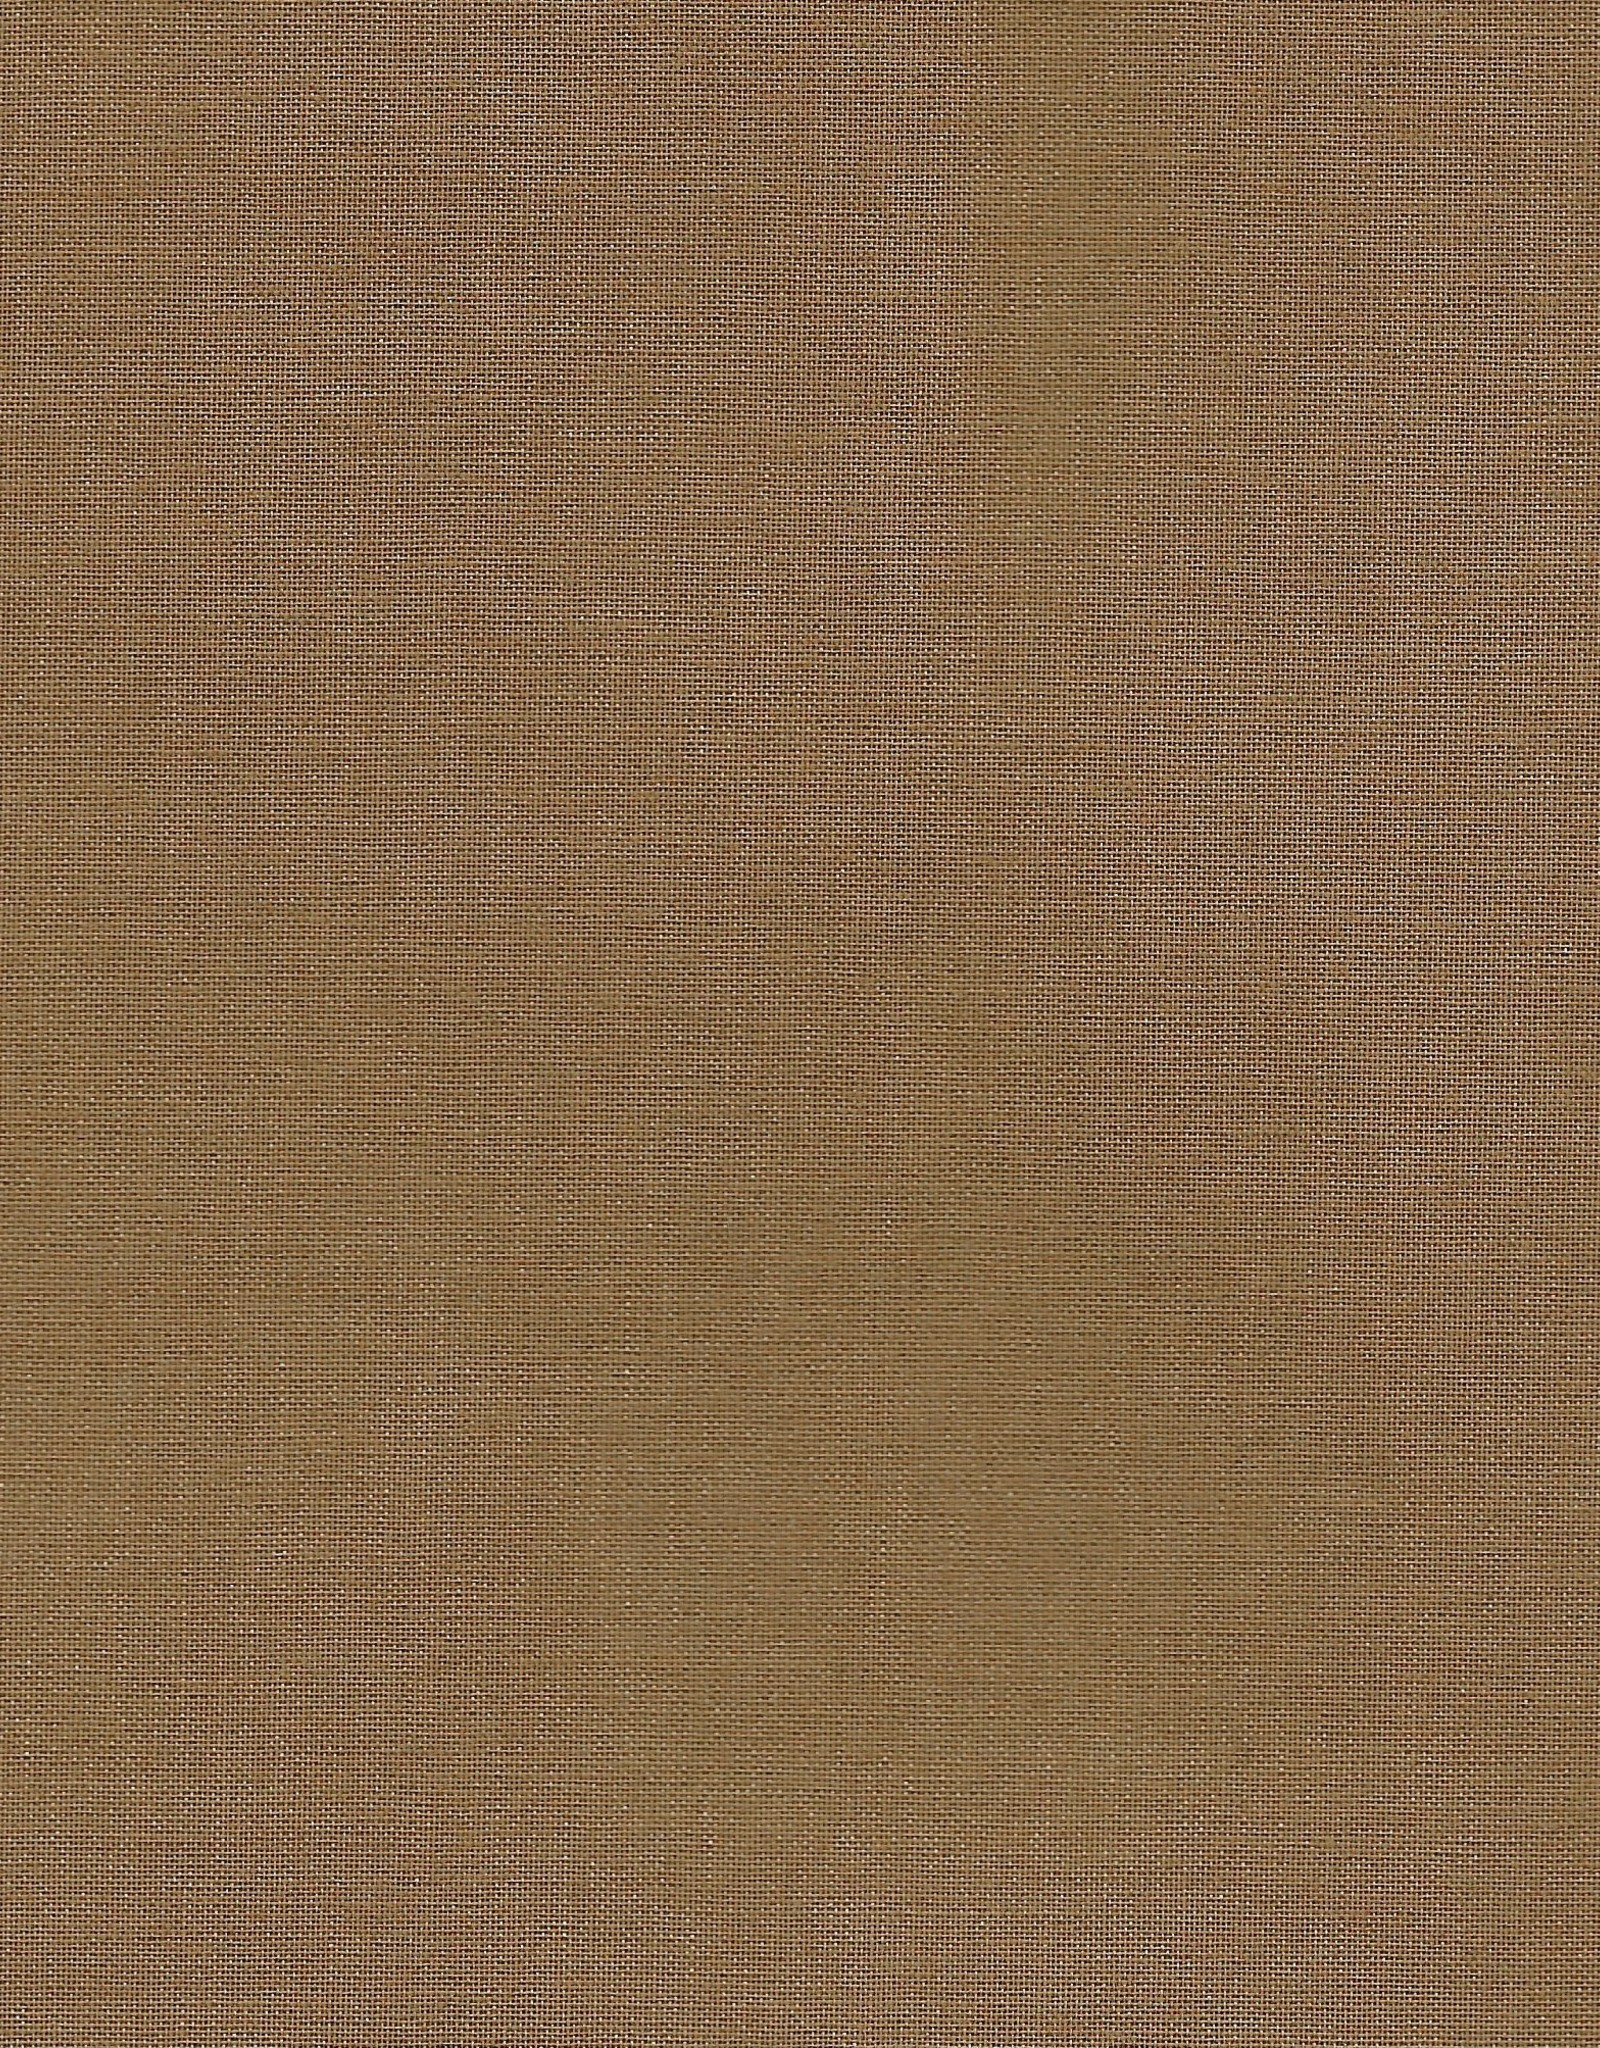 "Book Cloth Light Brown, 17"" x 19"", 1 Sheet, Acid-Free, 100% Rayon, Paper Backed"